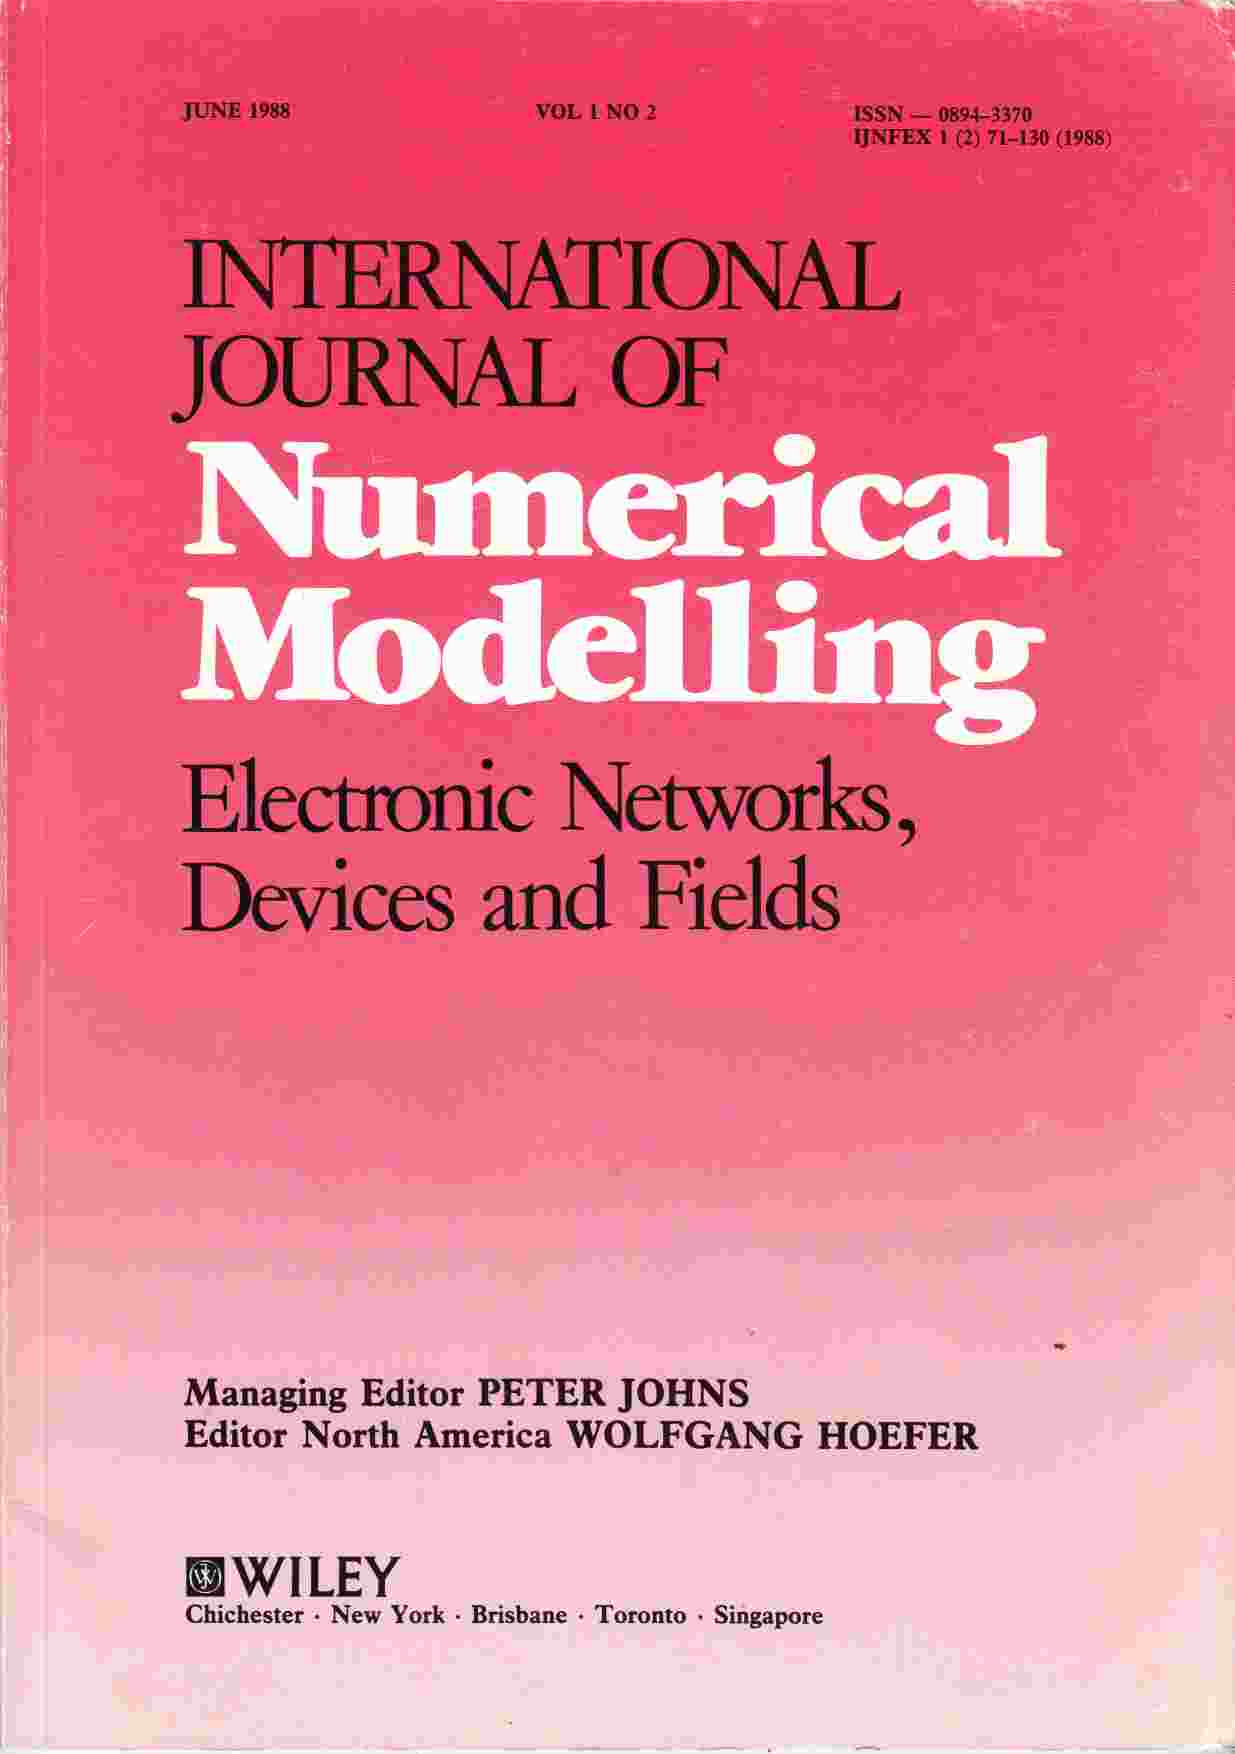 Image for International Journal of Numerical Modelling Electronic Networks, Devices and Fields